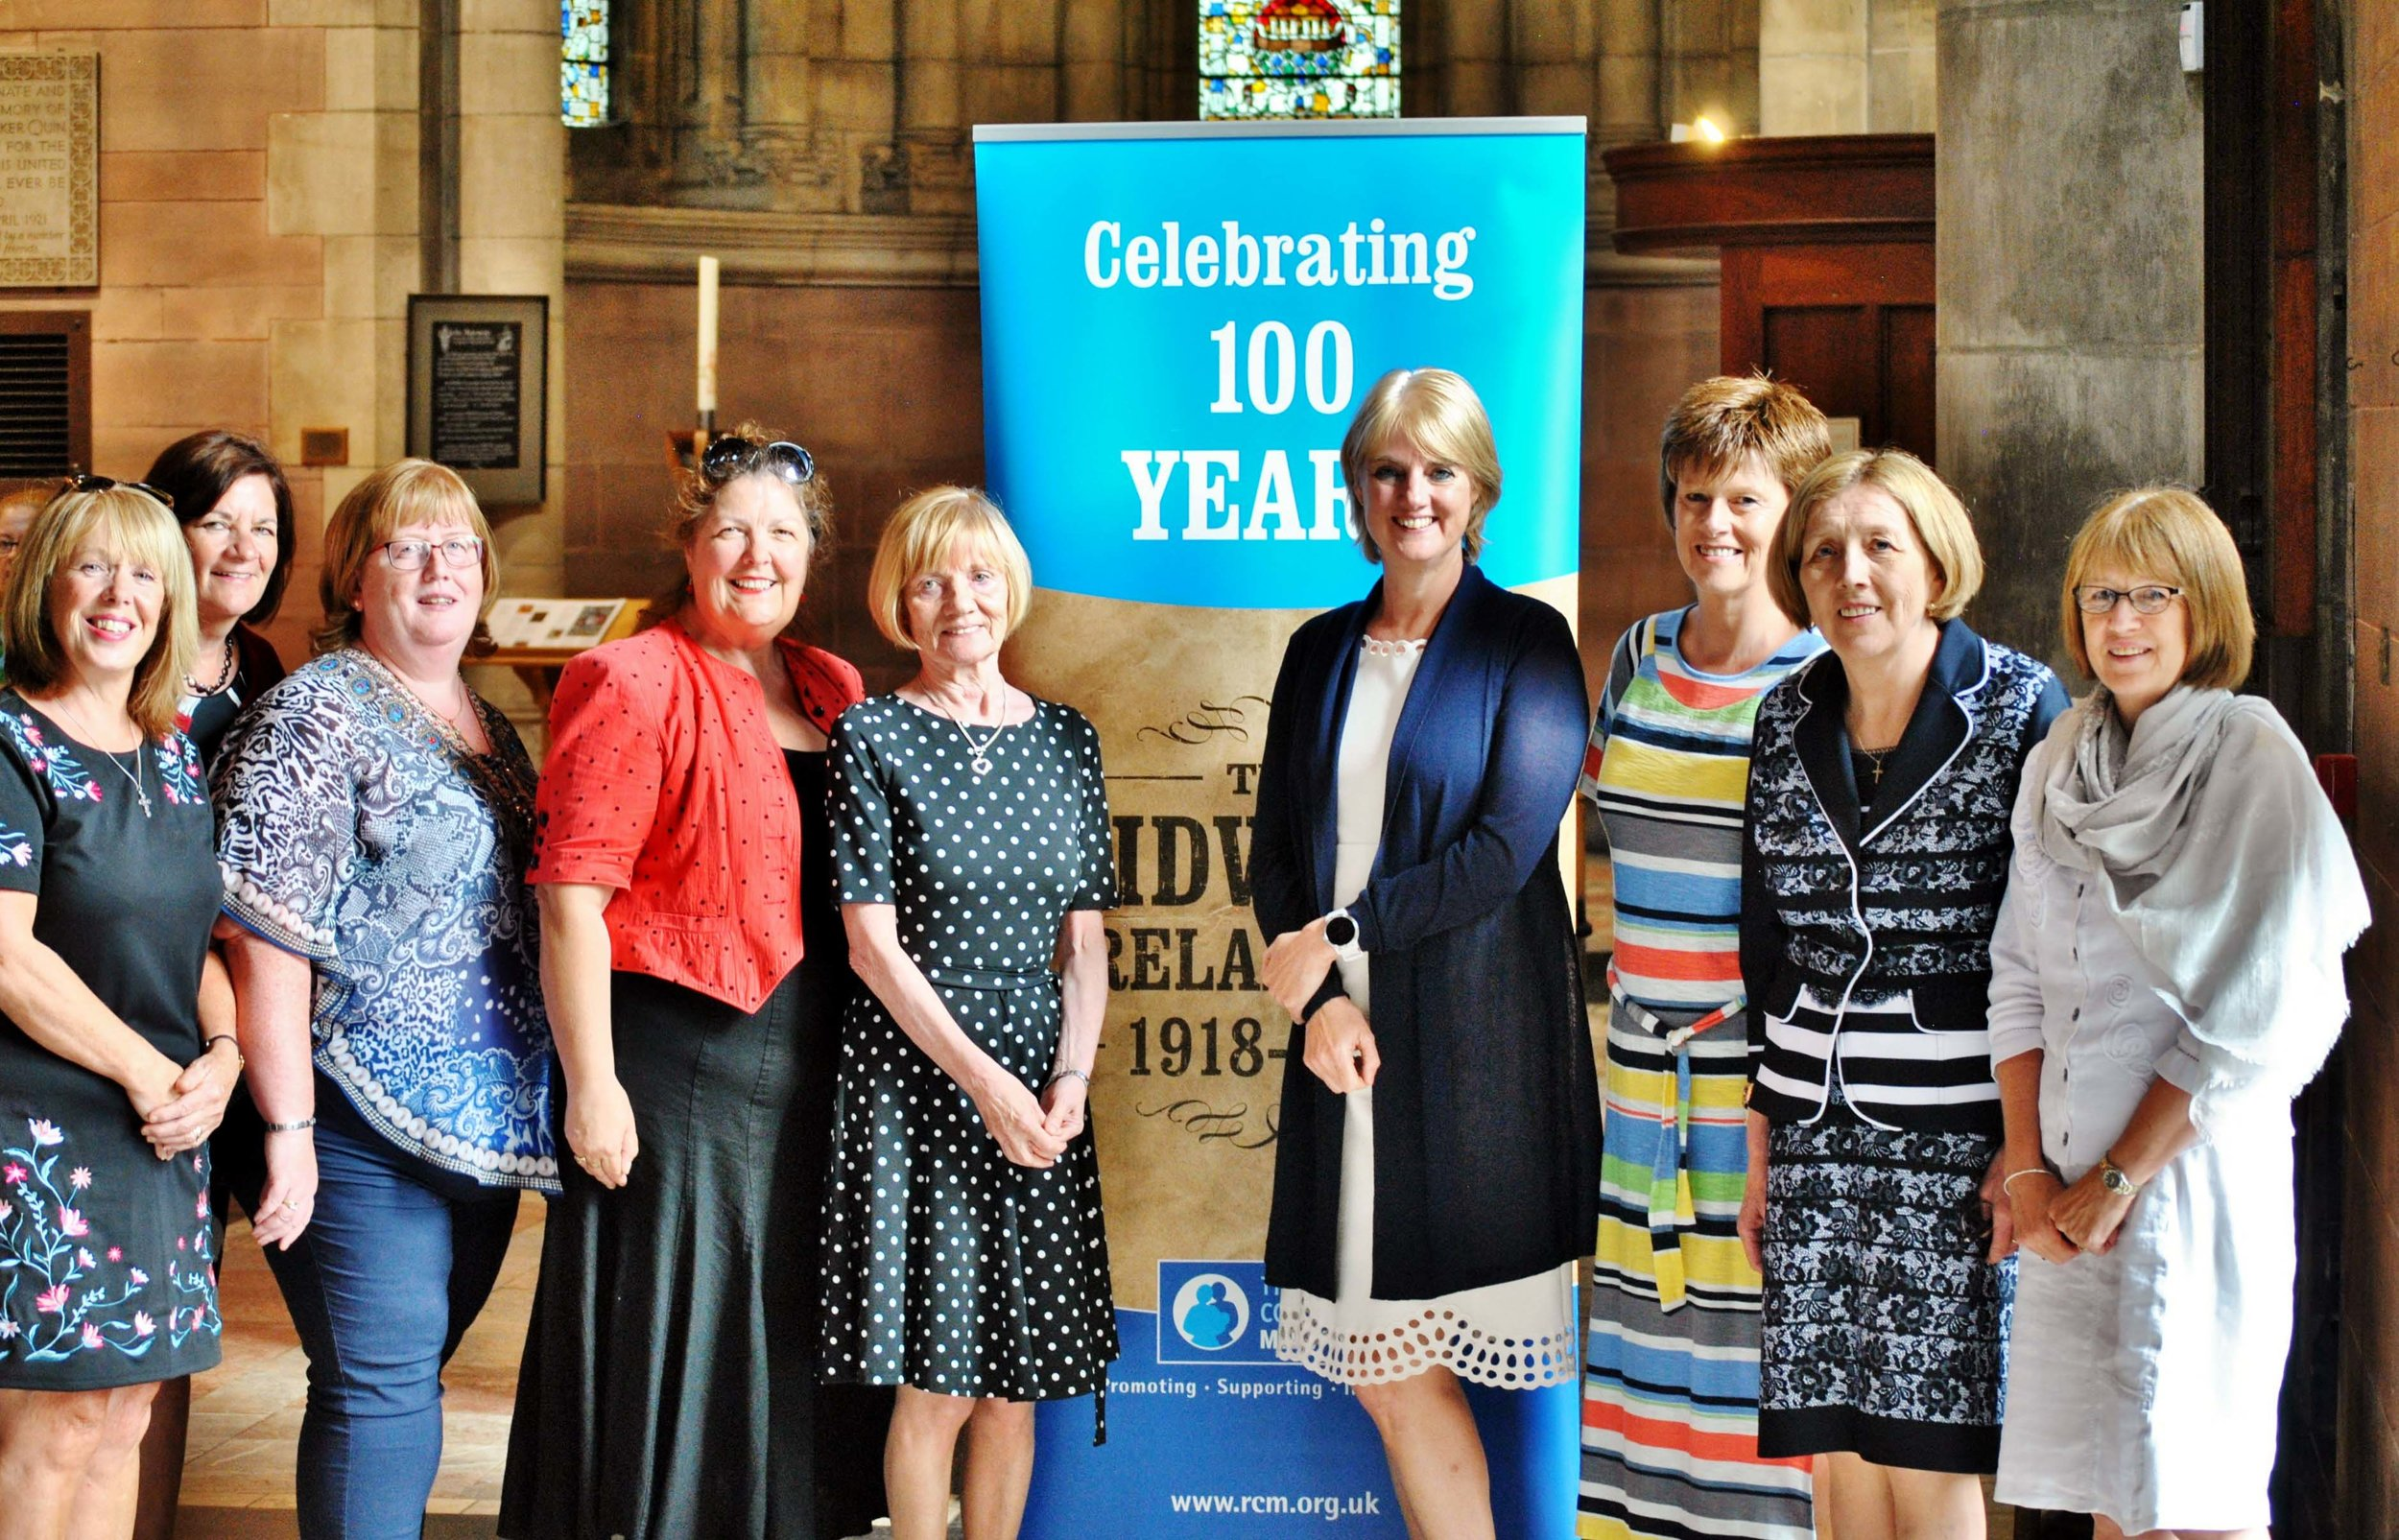 Members of the Royal College of Midwives who organised the Midwives100 service in Belfast Cathedral earlier this month (Photo: Joe Paulin)